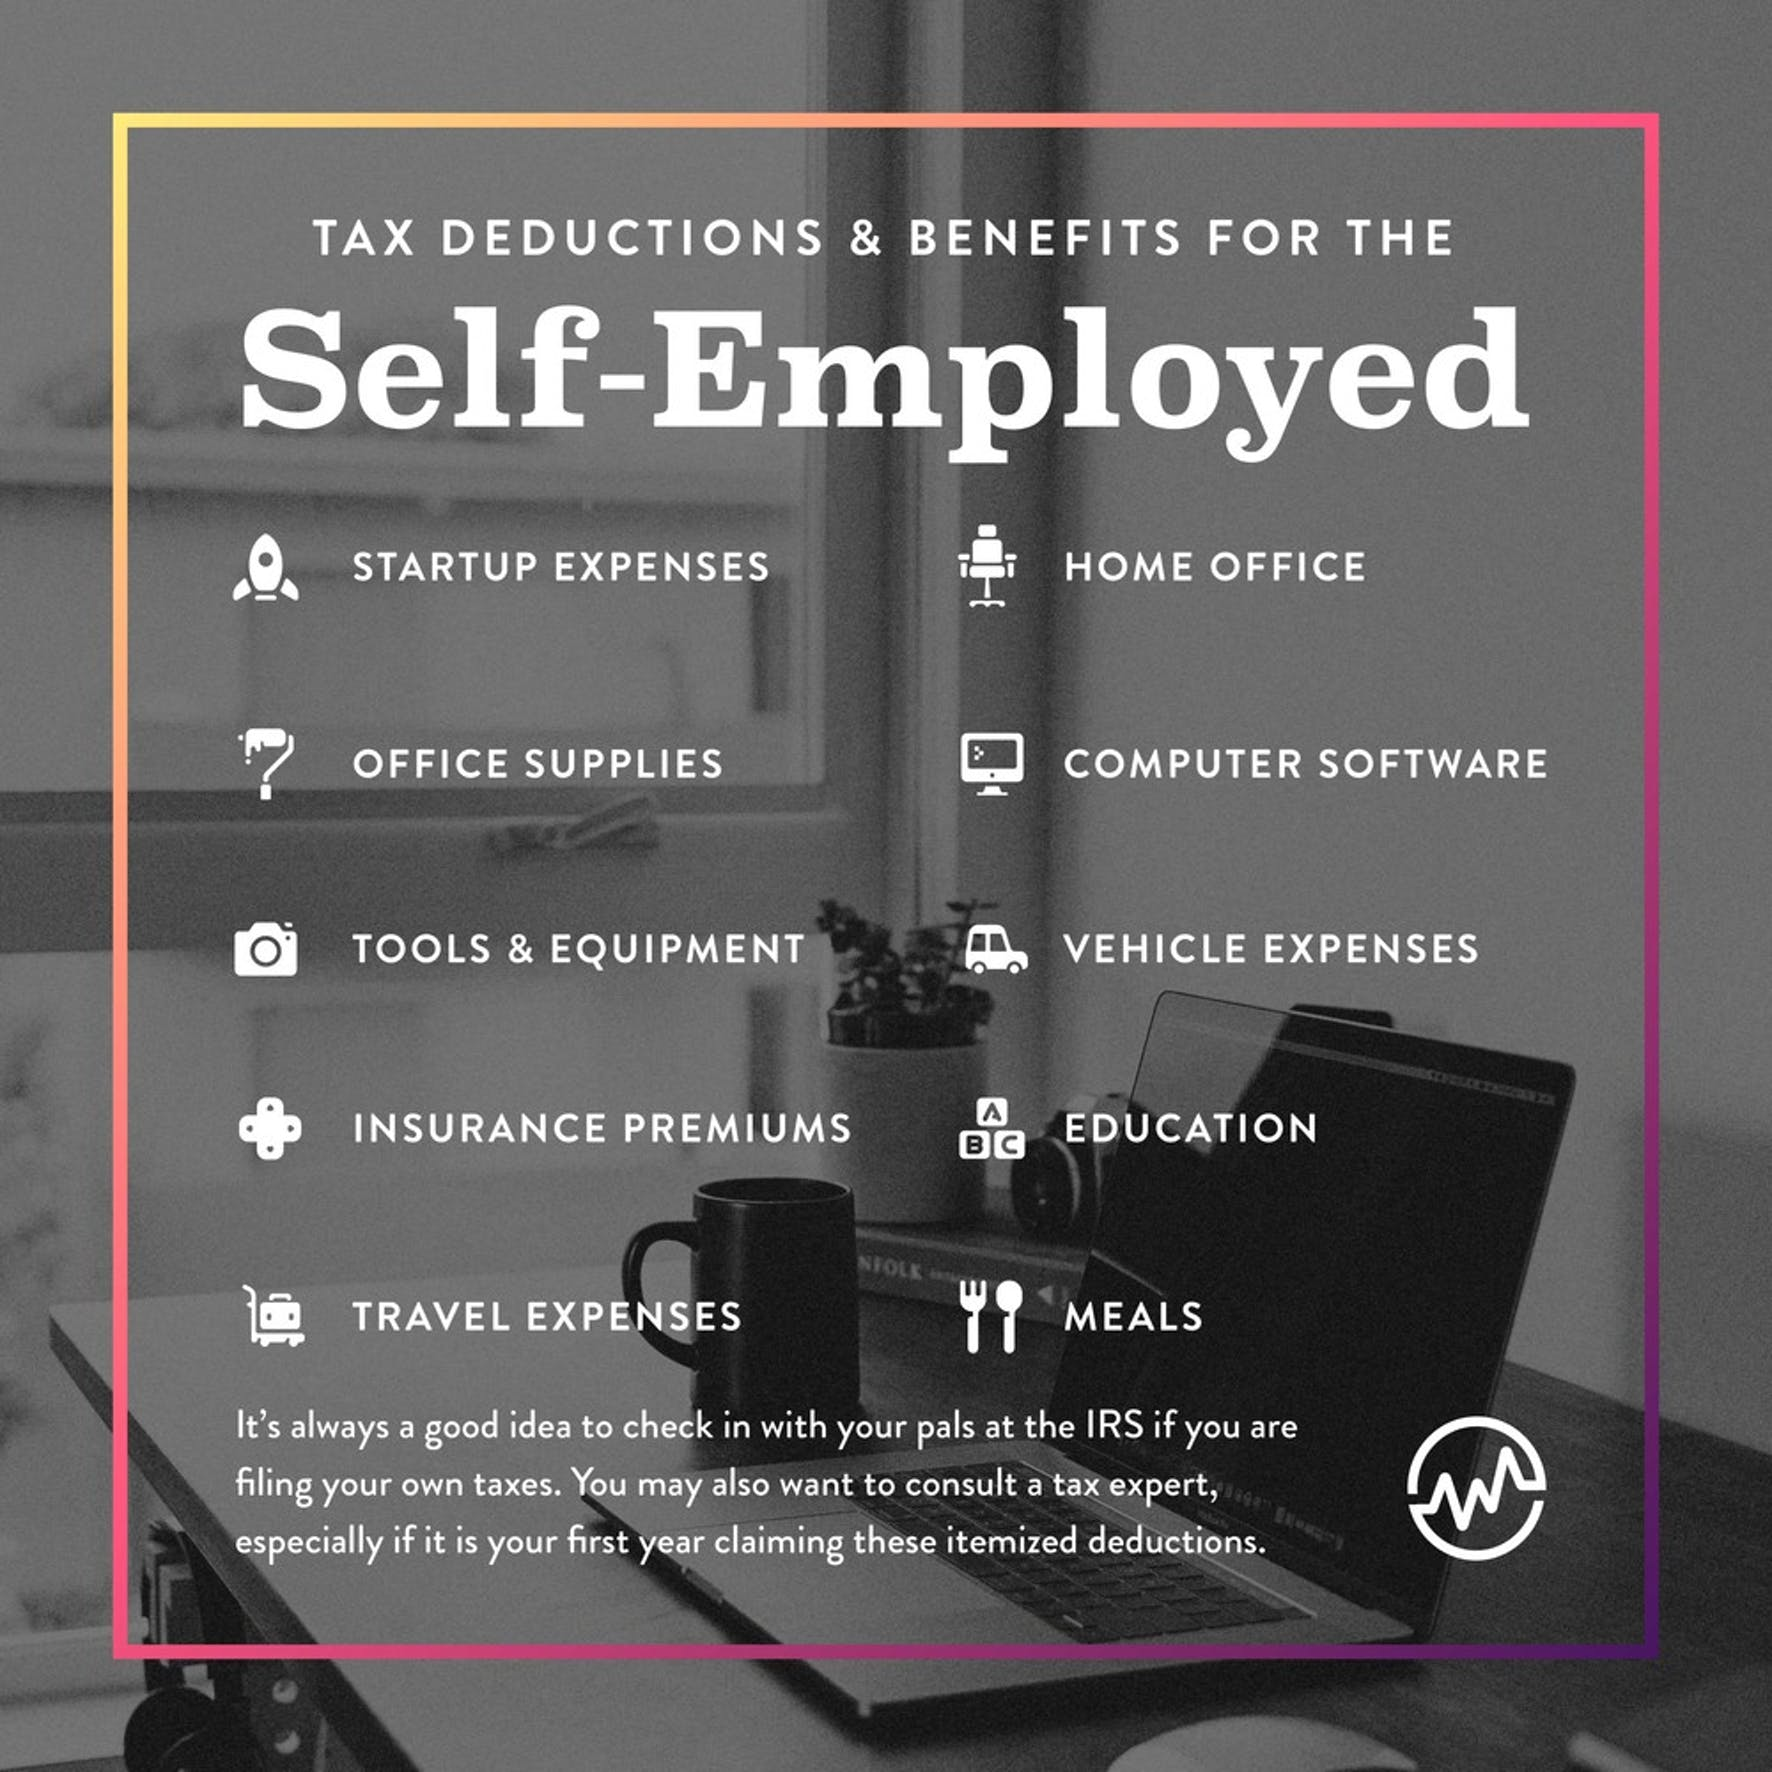 Top 10 Tax Deductions and Benefits for the Self-Employed